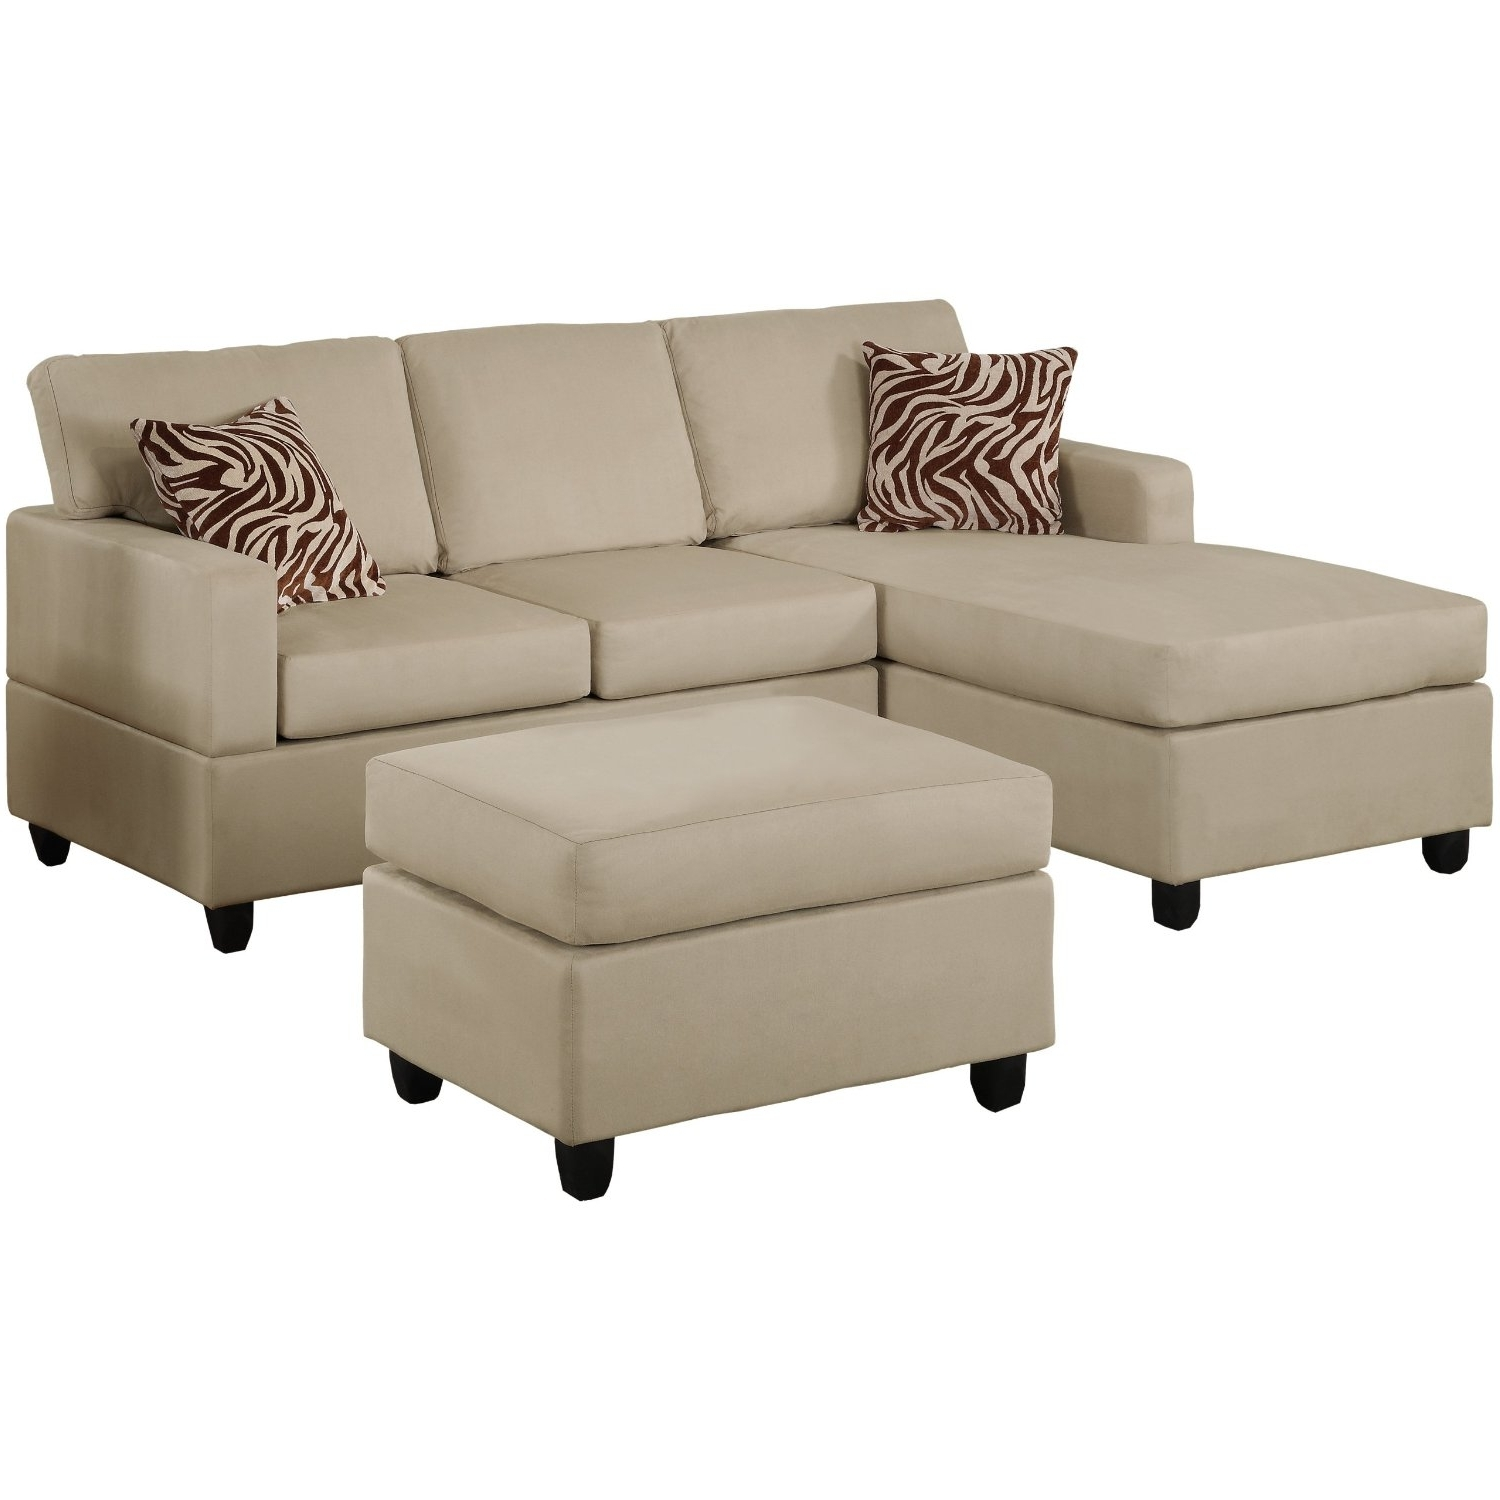 Most Recently Released Thomasville Sectional Sofas Design — Fabrizio Design For Thomasville Sectional Sofas (View 5 of 15)